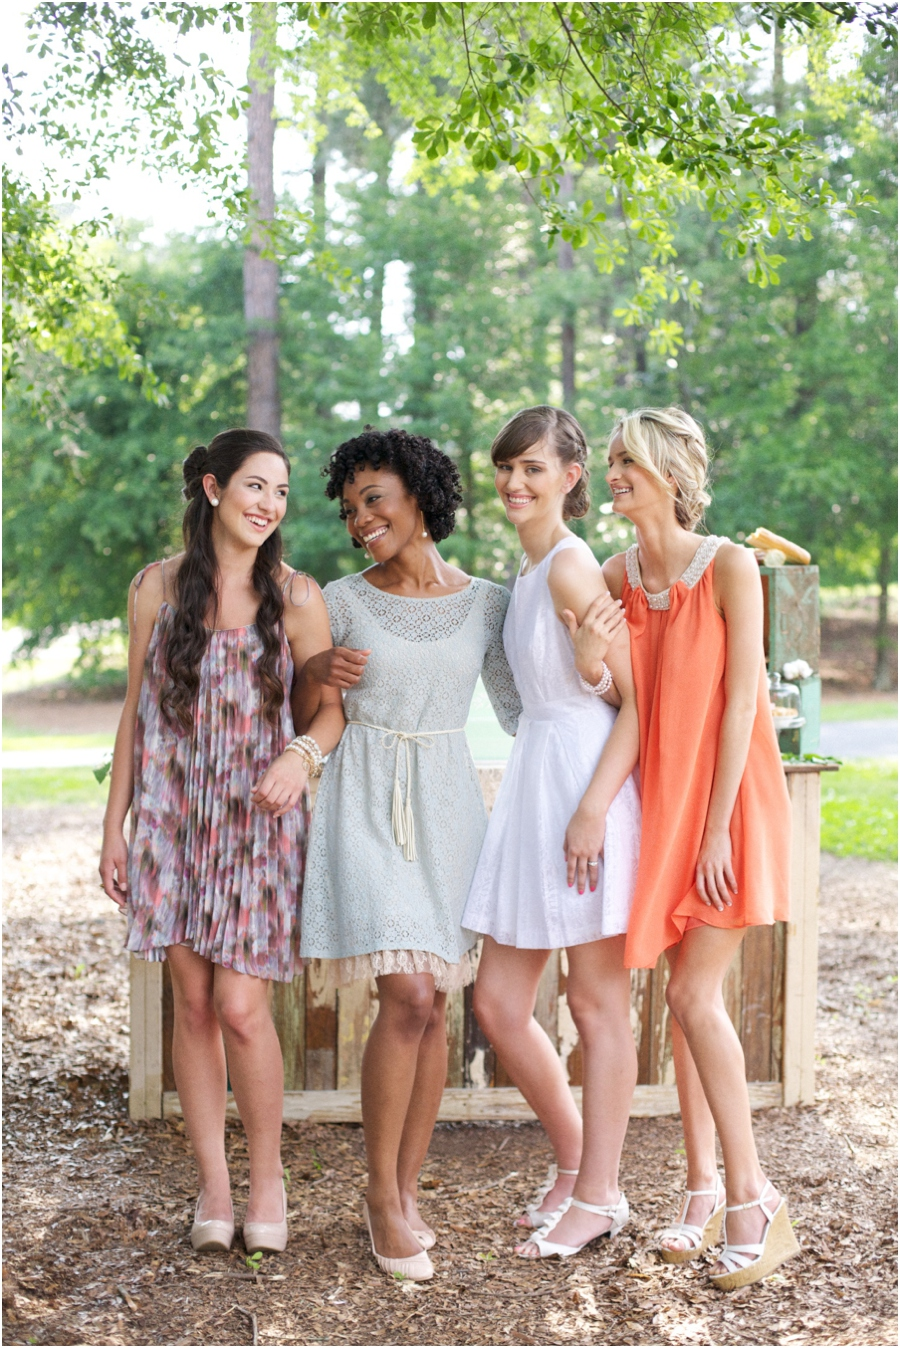 southern bridesmaids in lovely dresses from Peachy Keen, summer bridal photography, vintage wedding photographers